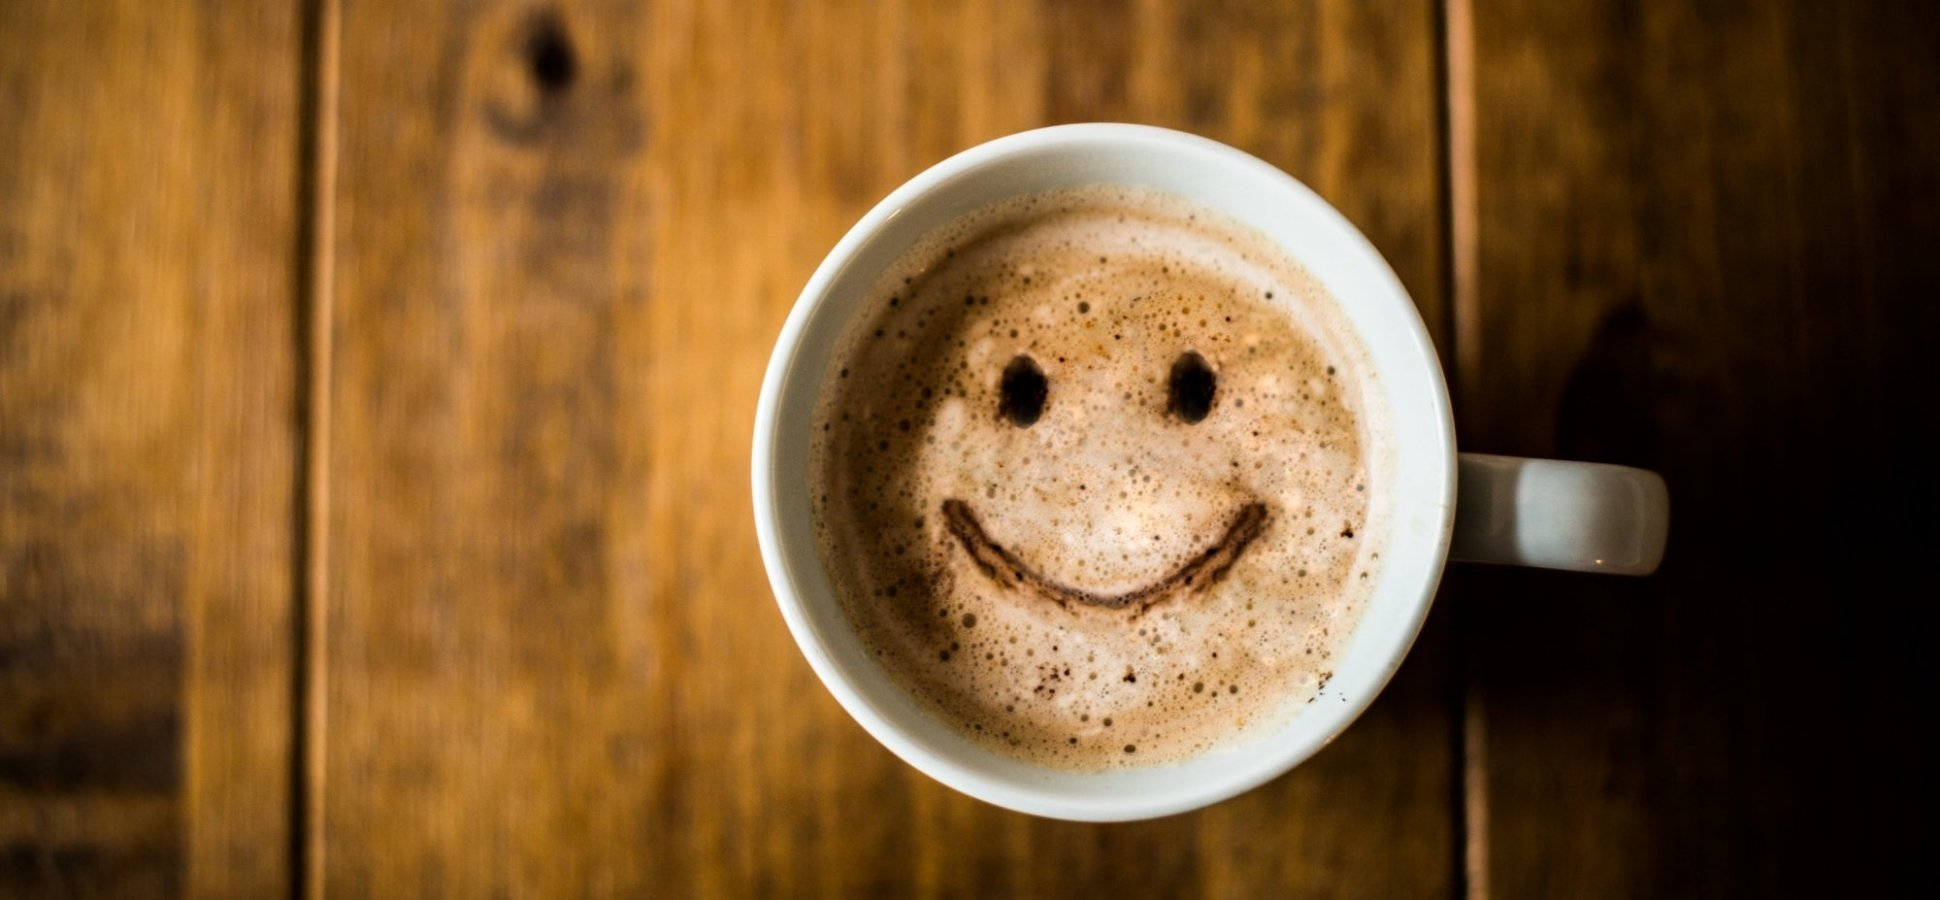 Just Thinking About Coffee Is Enough to Give You an Energy Boost, New Study Finds